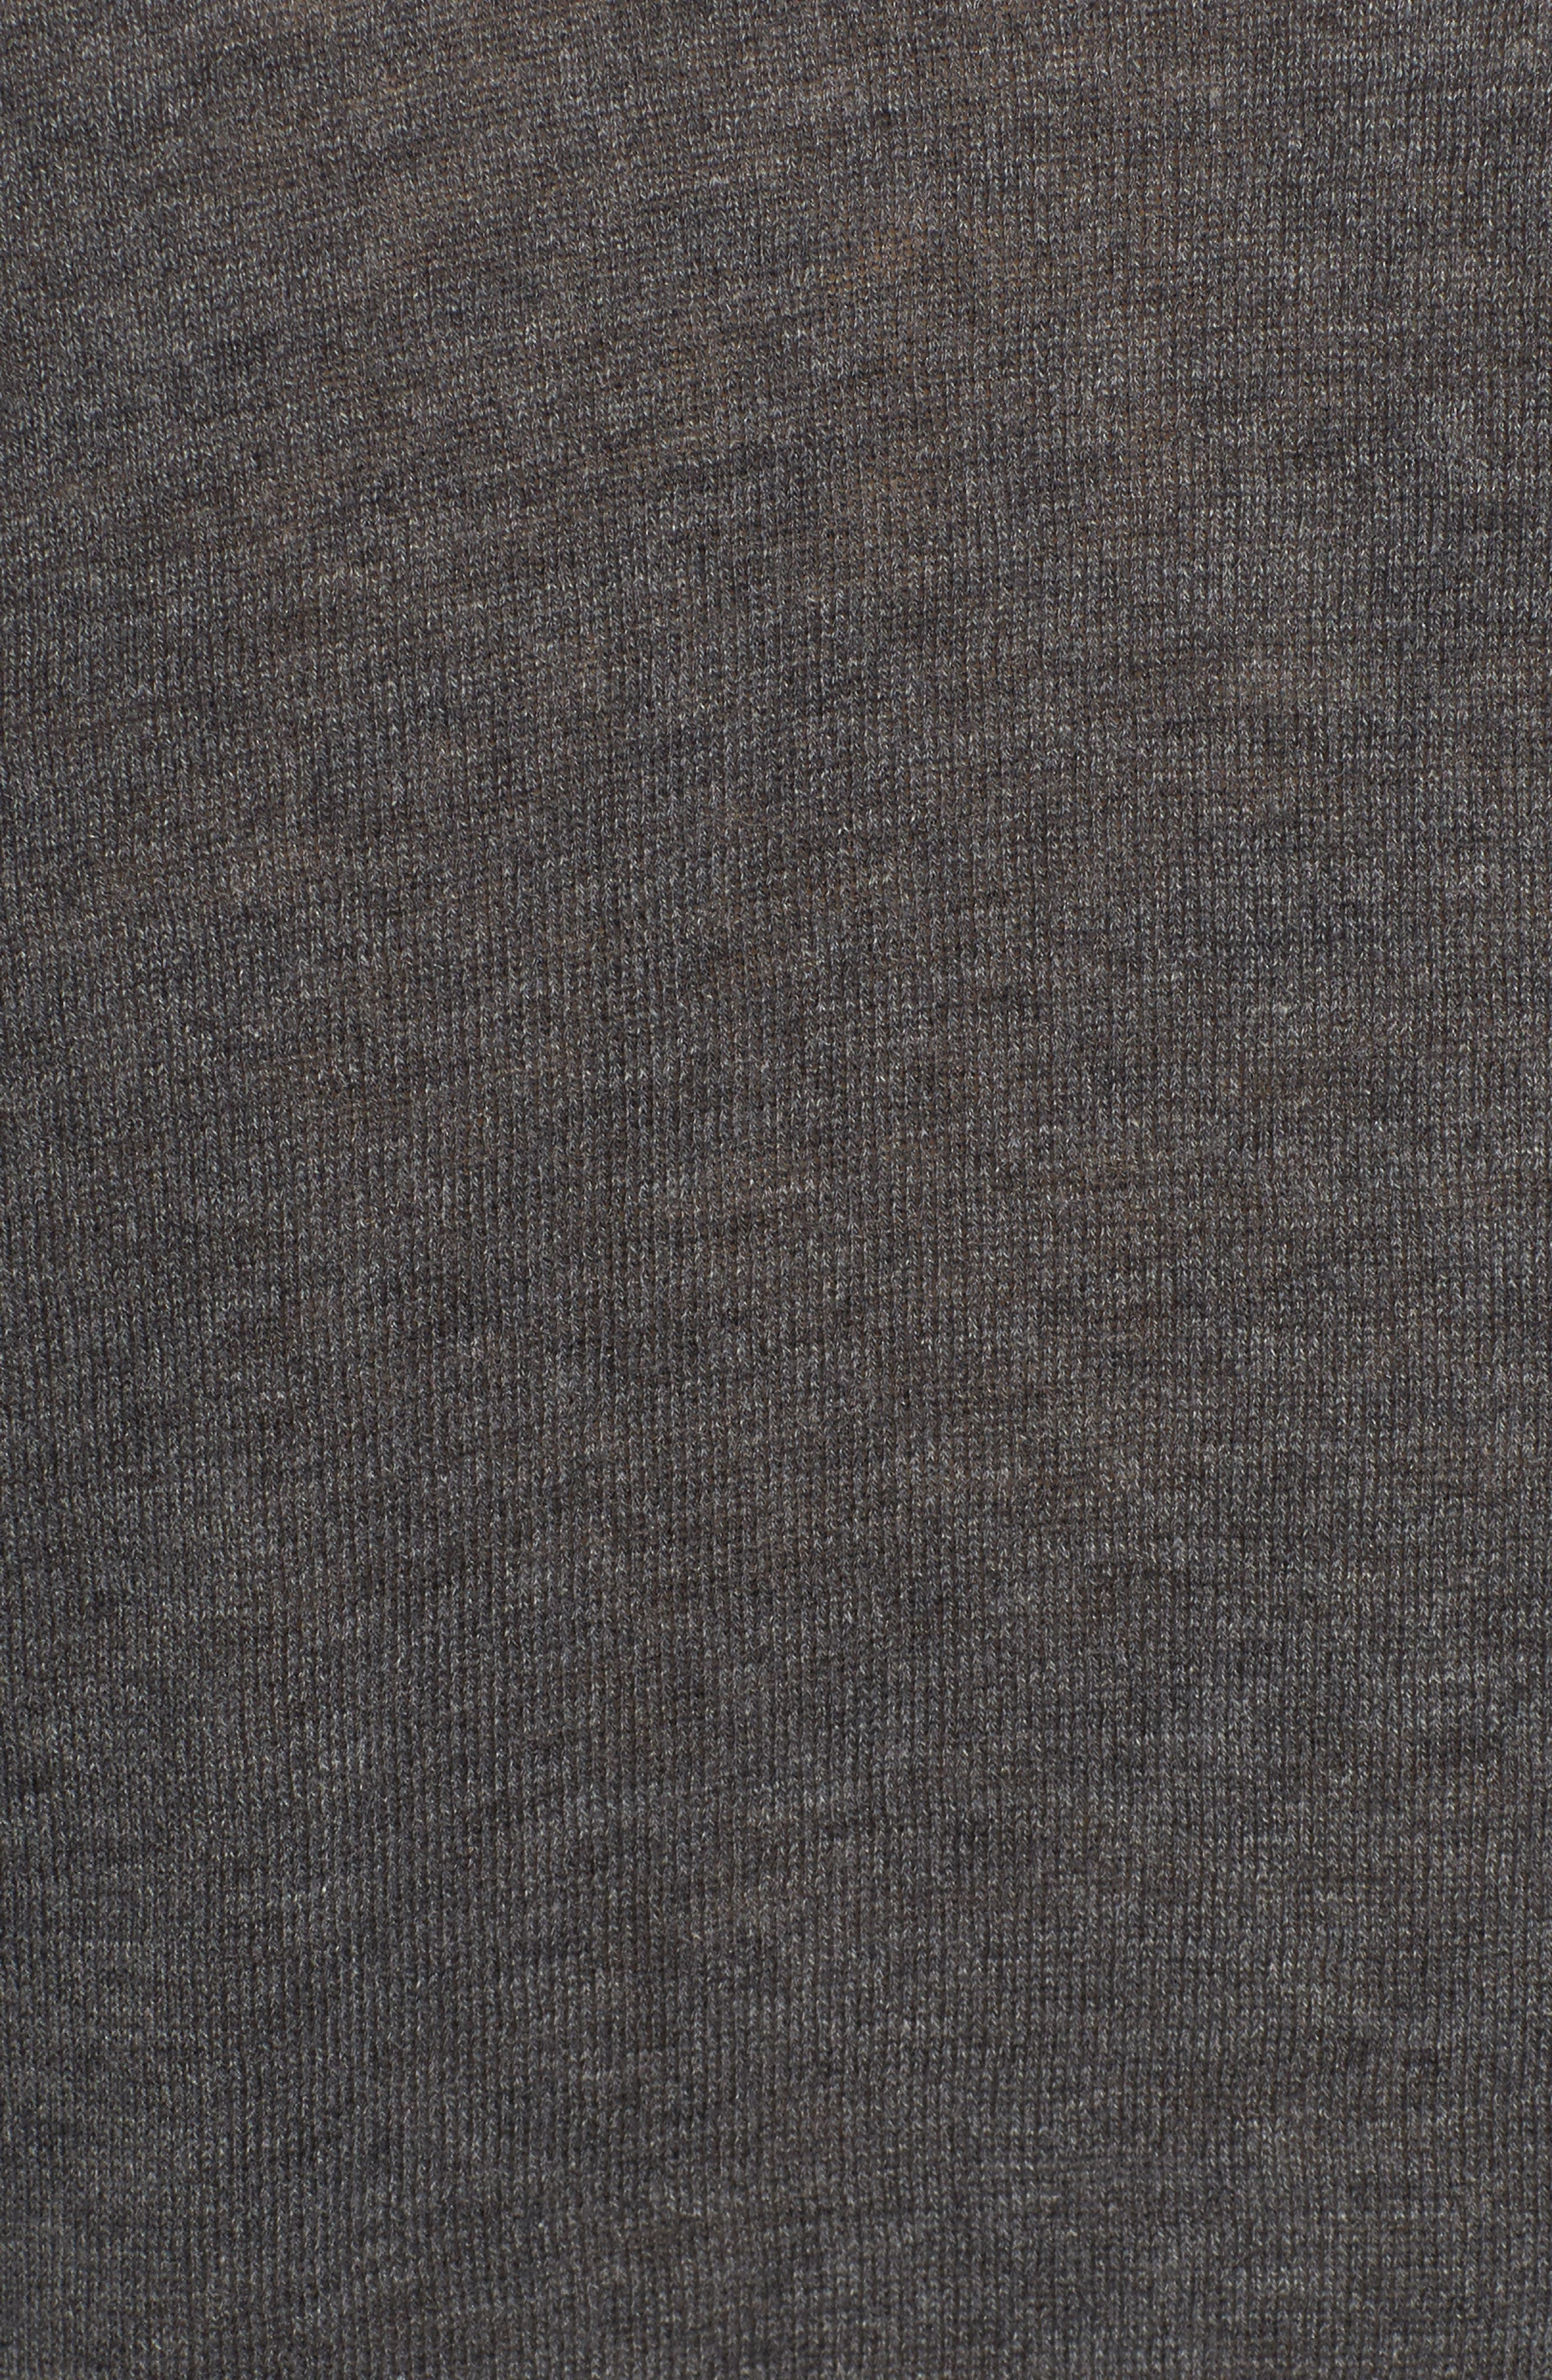 Deep V-Neck Sweater,                             Alternate thumbnail 5, color,                             DARK HEATHER GREY